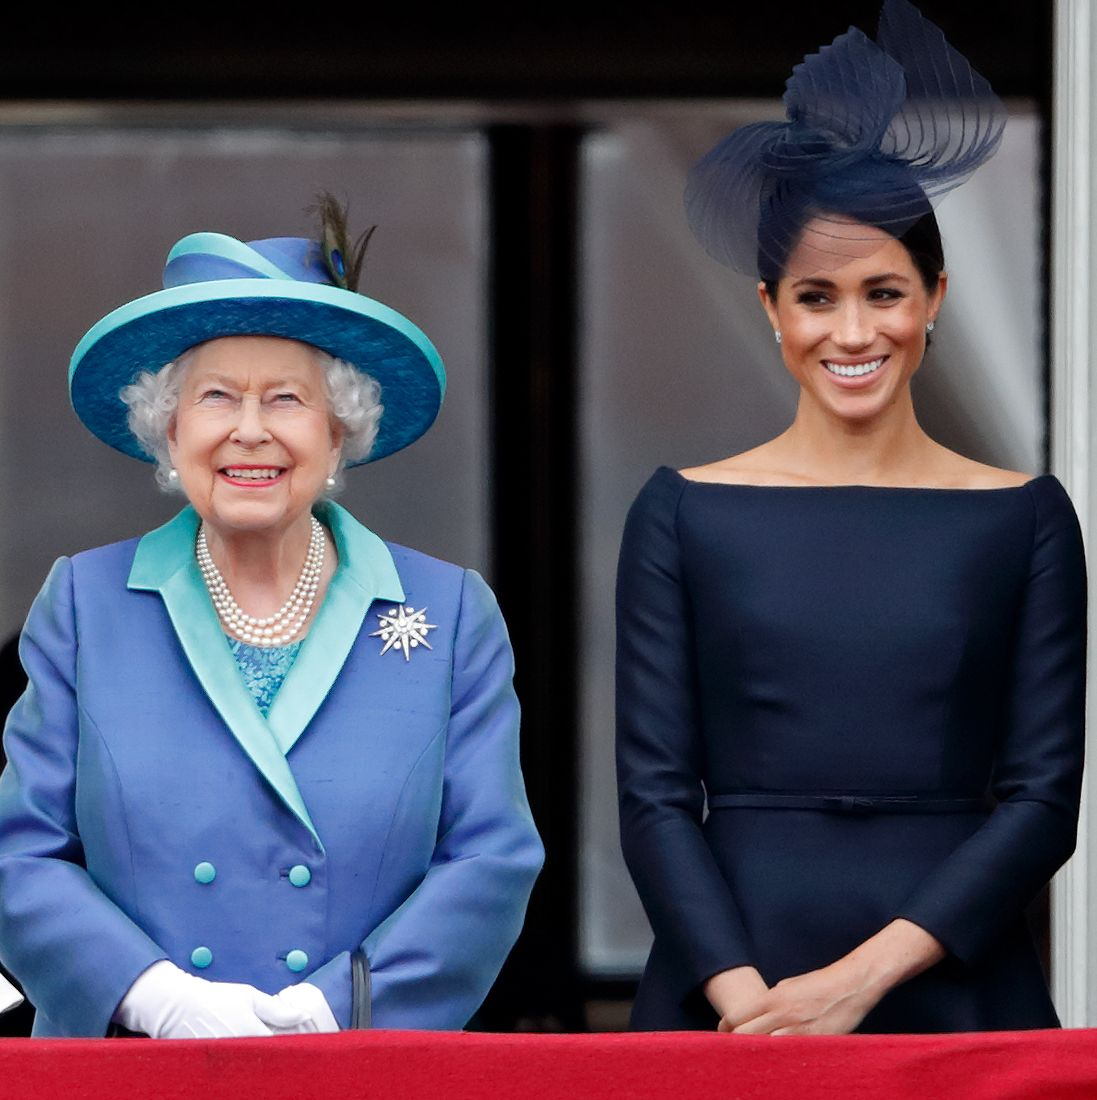 Queen Elizabeth Will Pass on Her Royal Patronage to Meghan Markle in the New Year